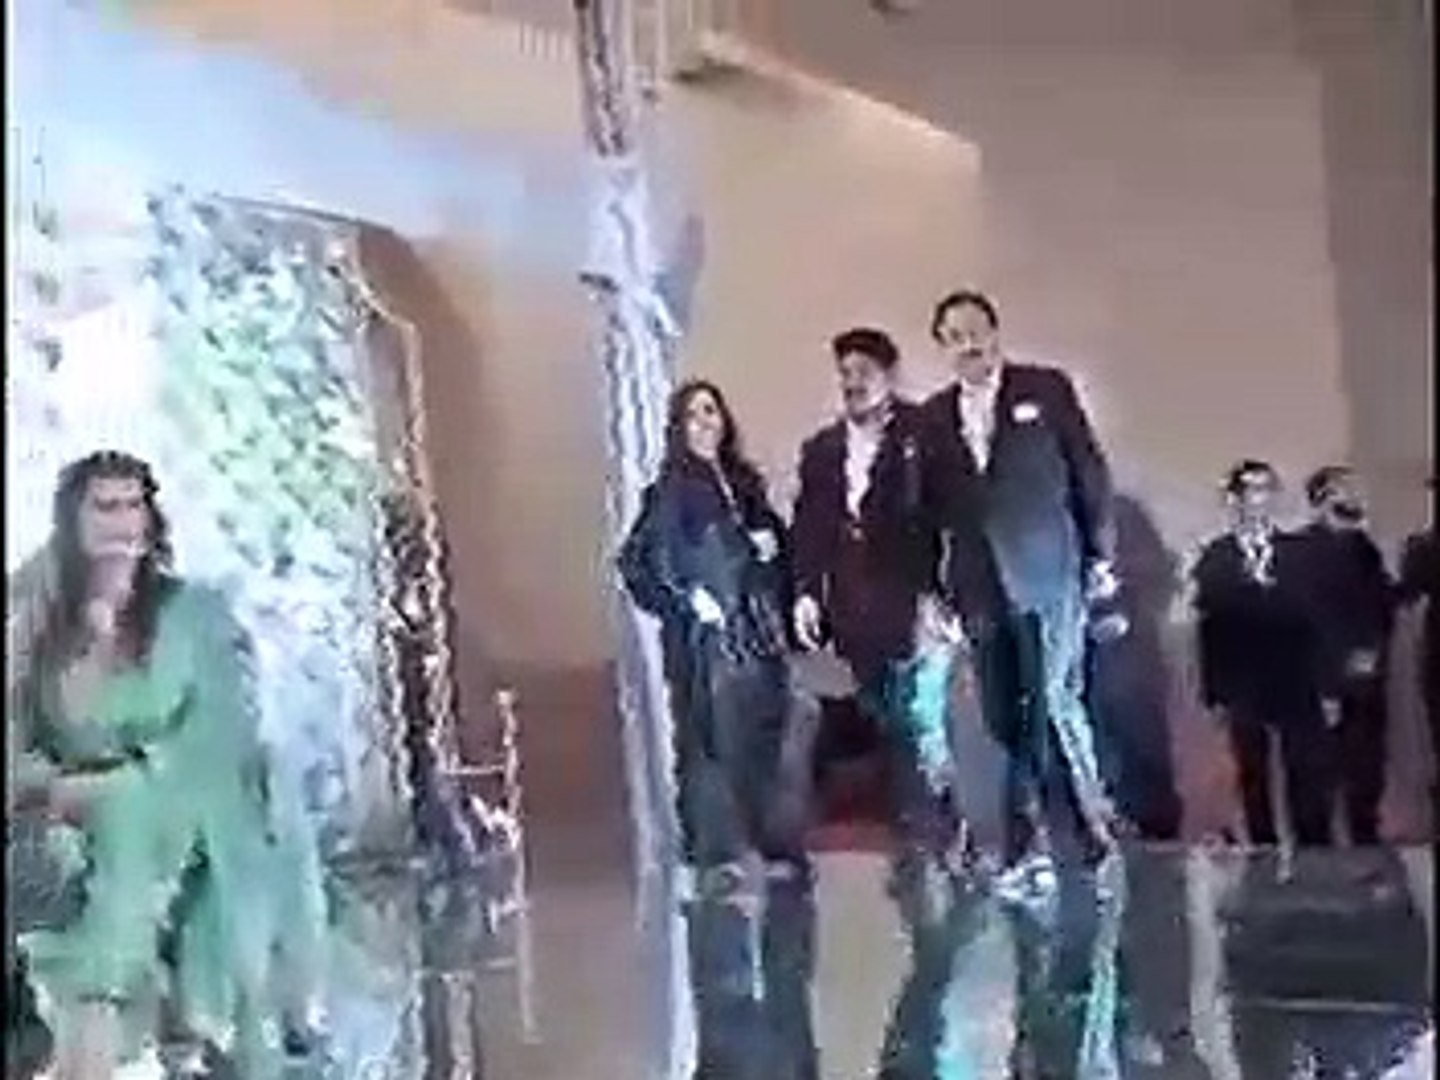 Wedding of Hamid Mir's Son, DG ISPR, President Pakistan & Other Big  Personalities Participate